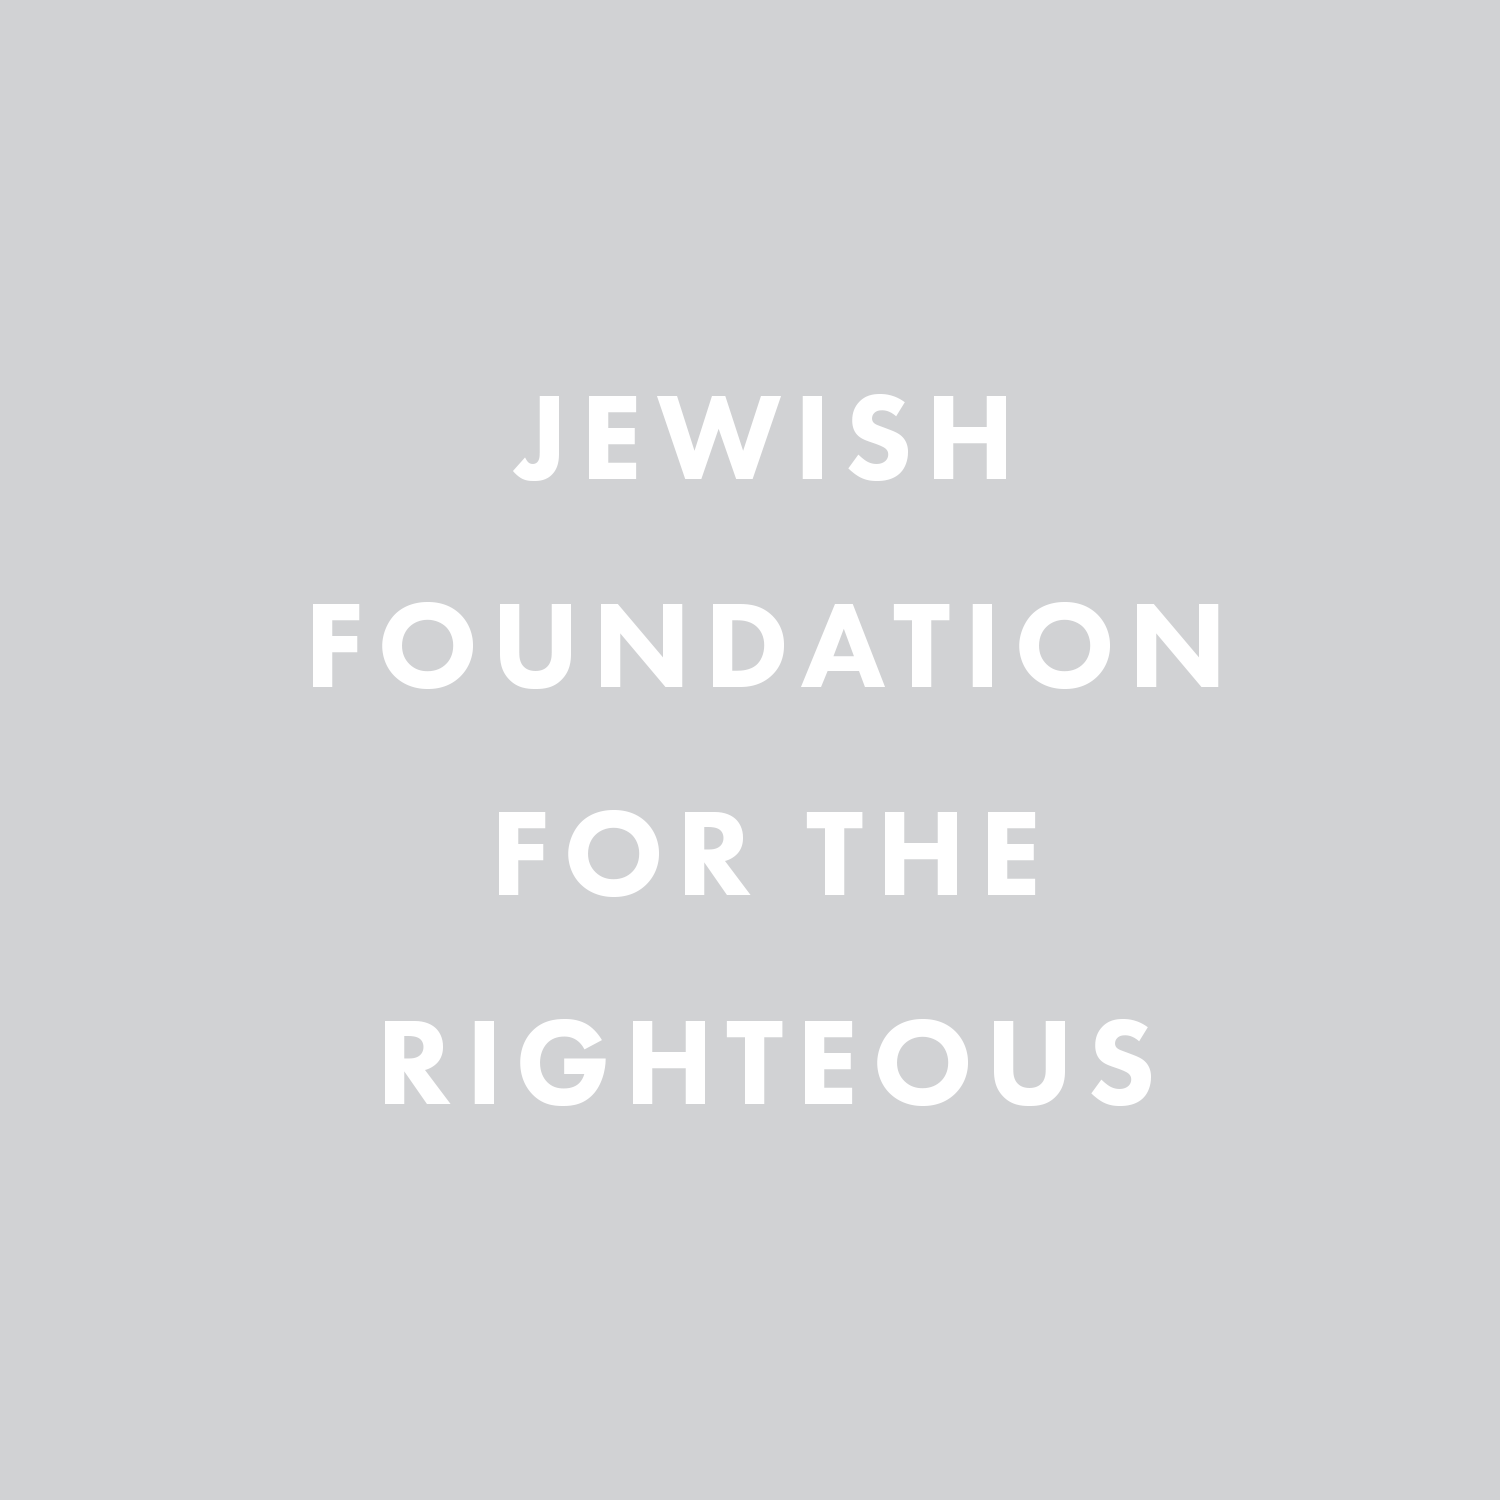 Jewish Foundation for the Righteous